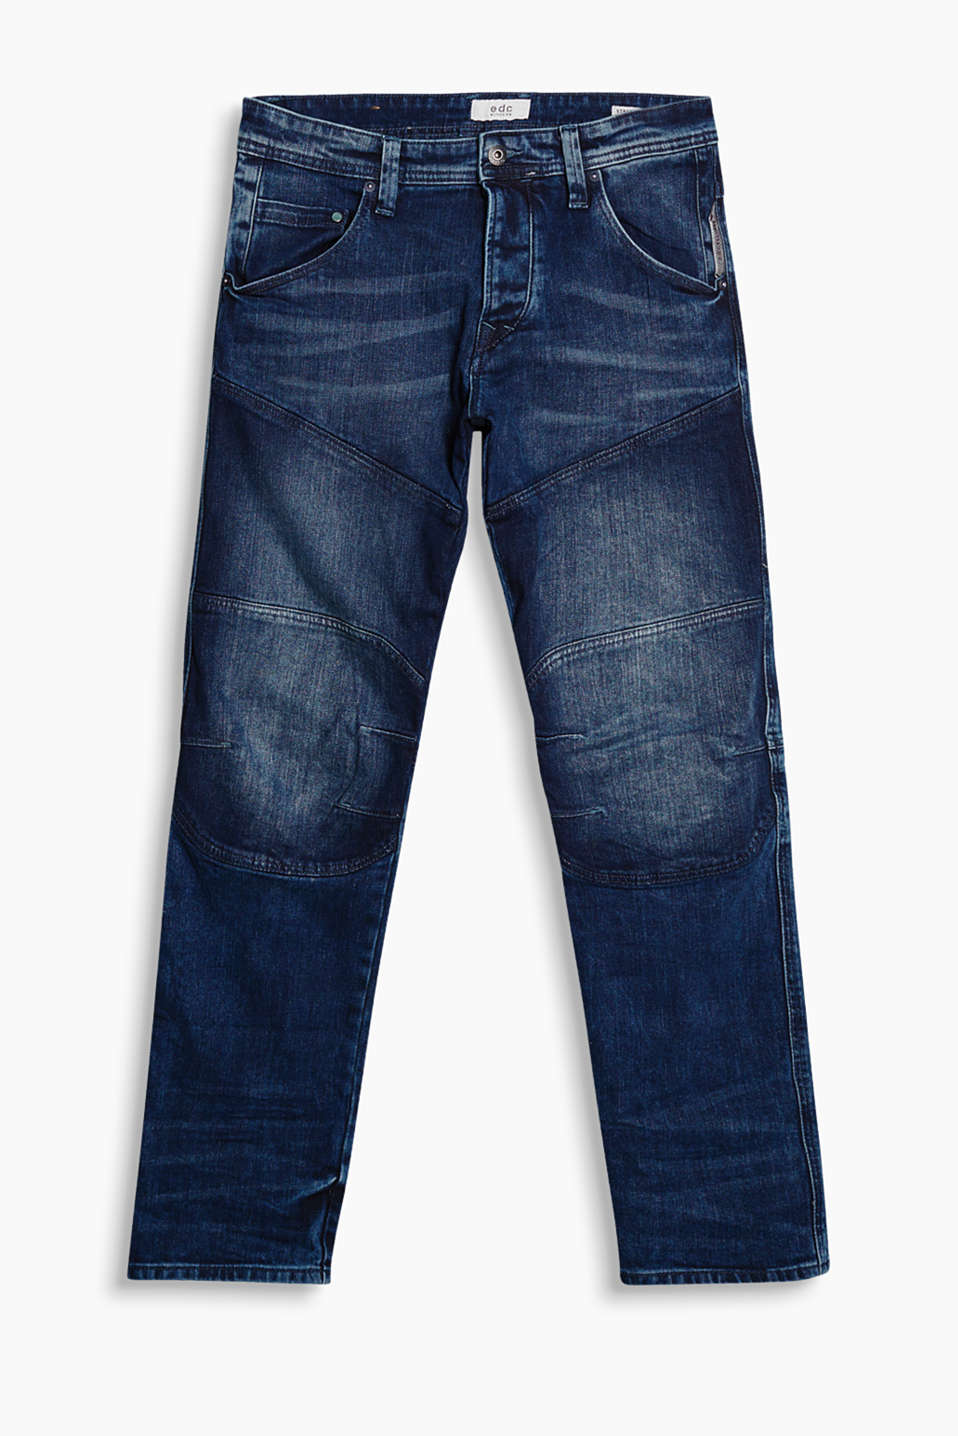 Jeans in a classic five-pocket style with stylish garment-washed effects